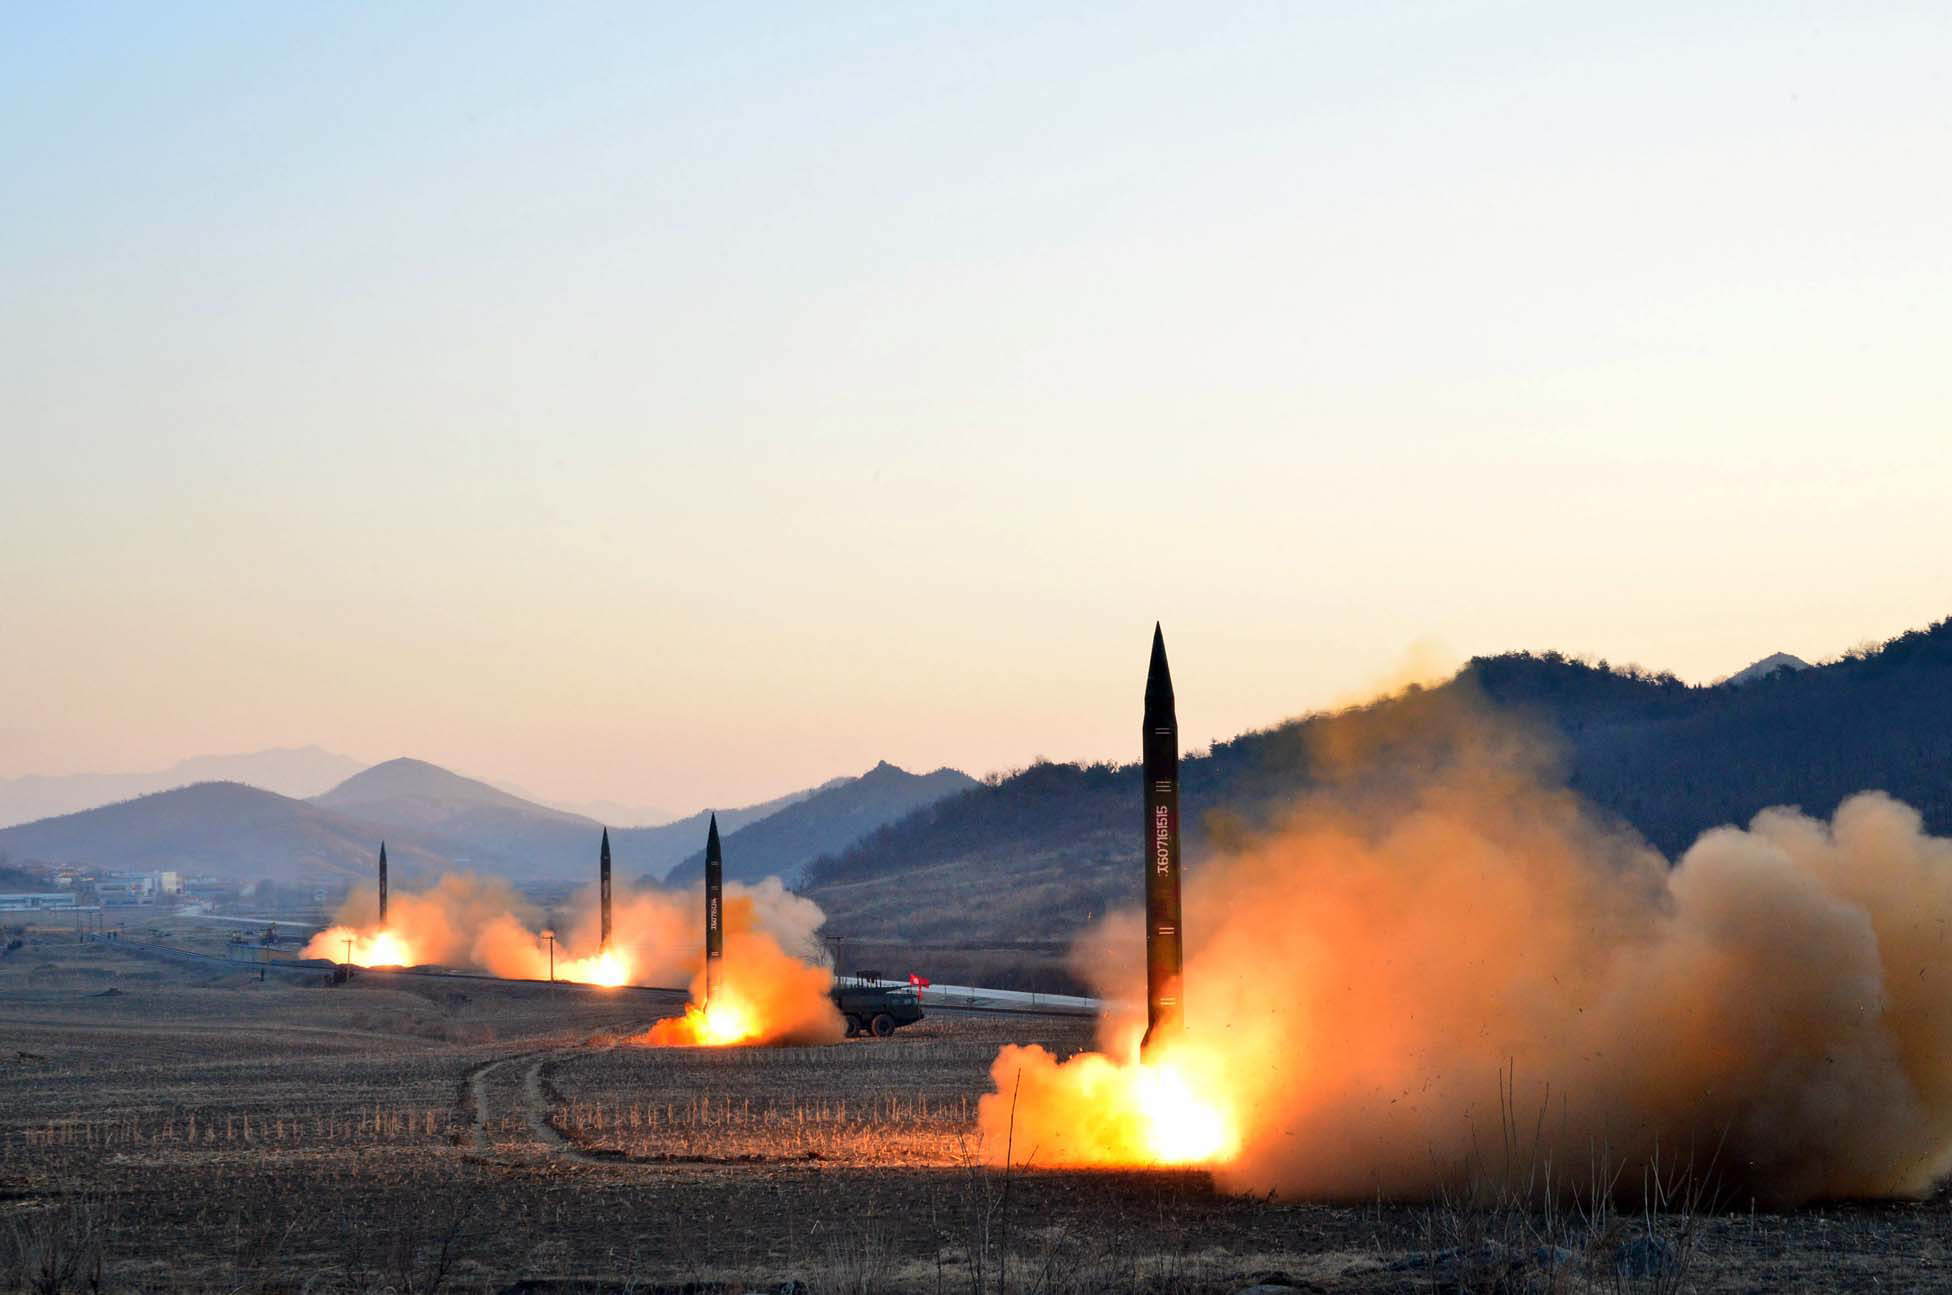 This undated picture released by North Korea's Korean Central News Agency (KCNA) via KNS on March 7, 2017 shows the launch of four ballistic missiles by the Korean People's Army (KPA) during a military drill at an undisclosed location in North Korea.